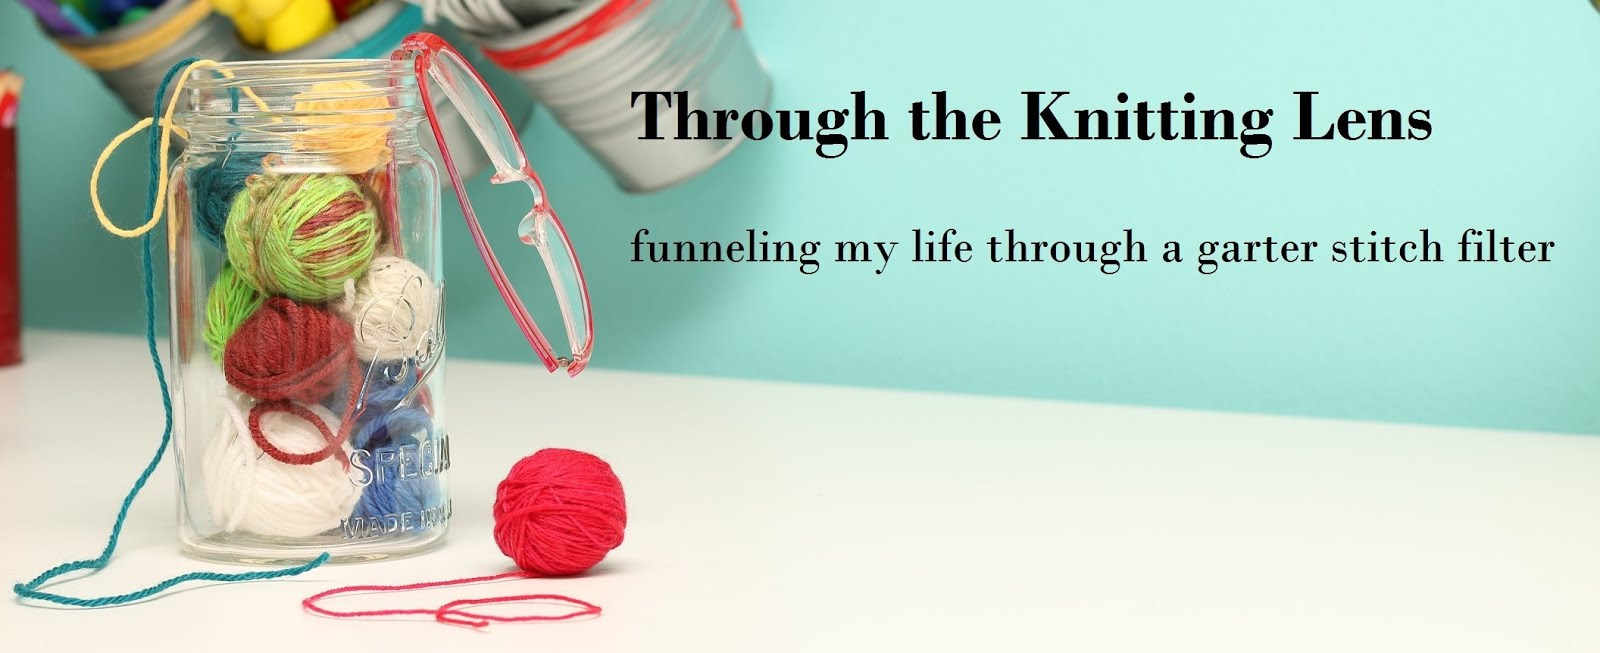 Through the Knitting Lens